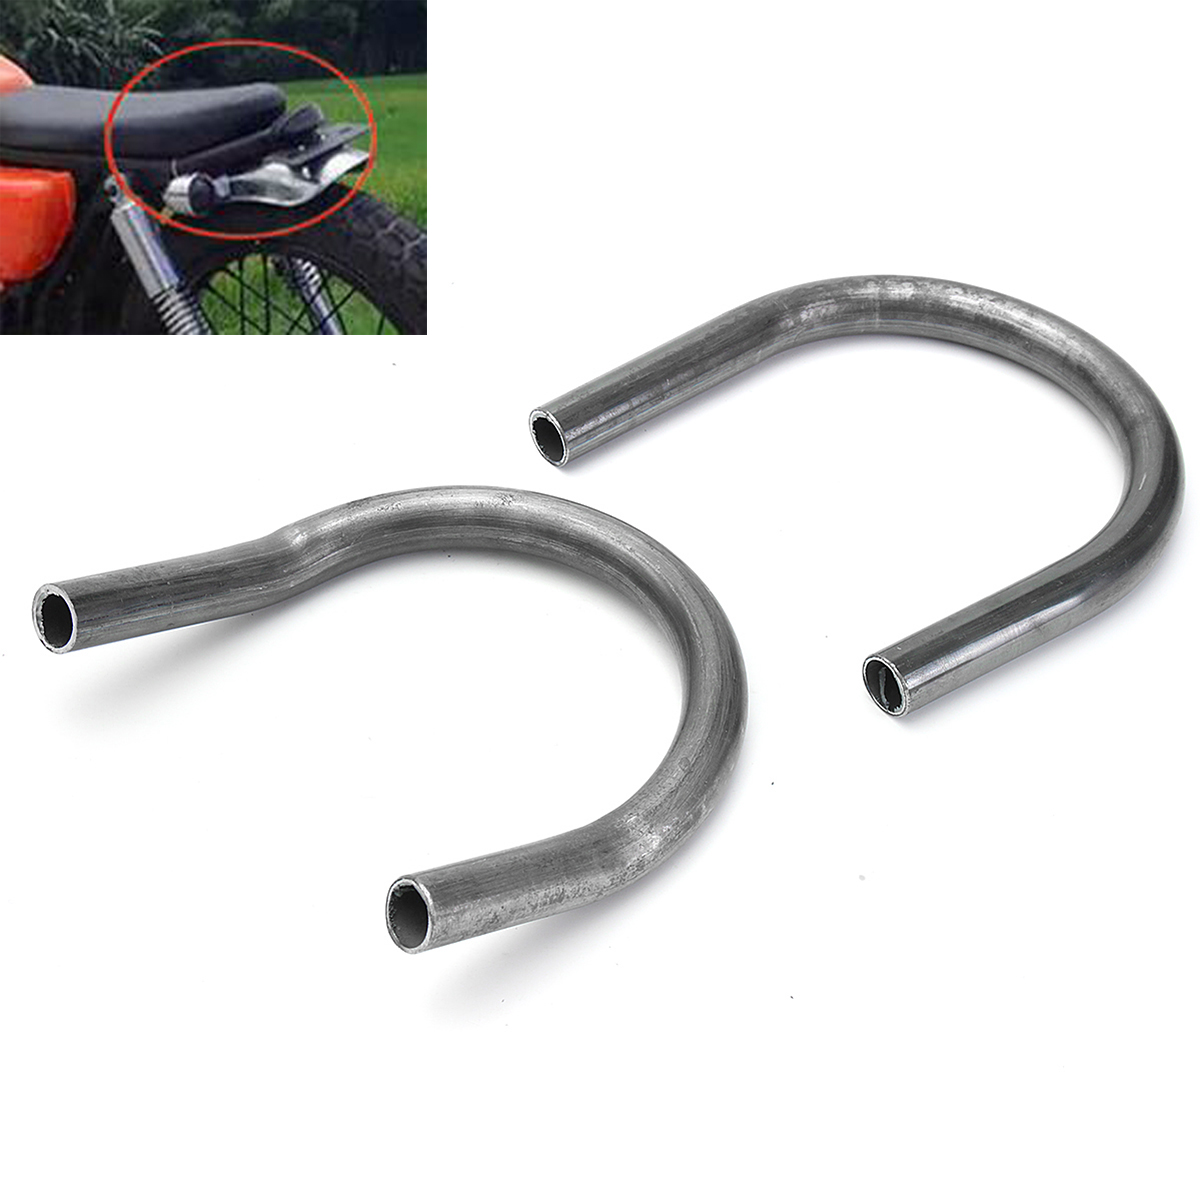 Motorcycle Retro Rear Upswept/Flat Seat Loop Frame Hoop For Yamaha/Suzuki/Honda